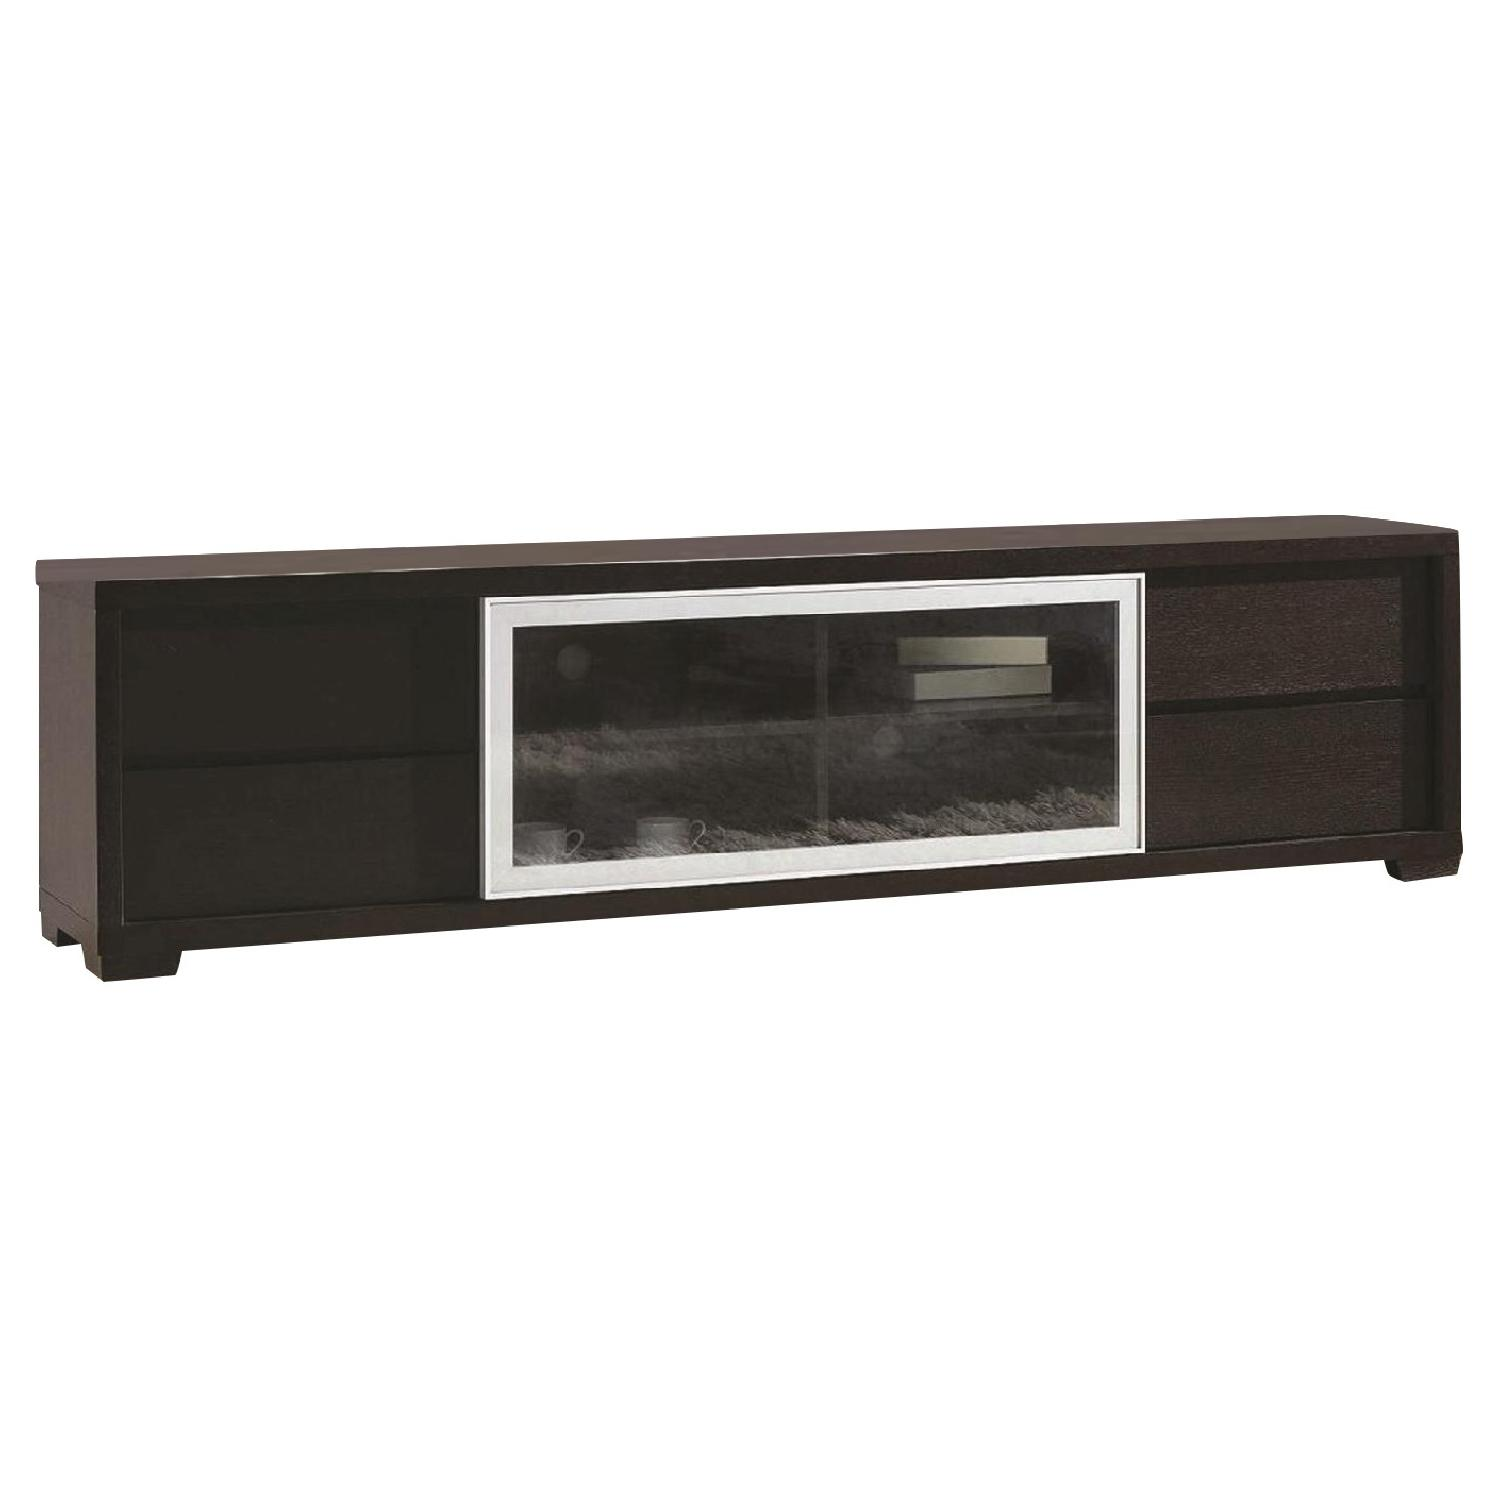 TV Stand in Wenge Finish w/ 4 Drawers & Middle Shelves & Covered by A Sliding Glass Door